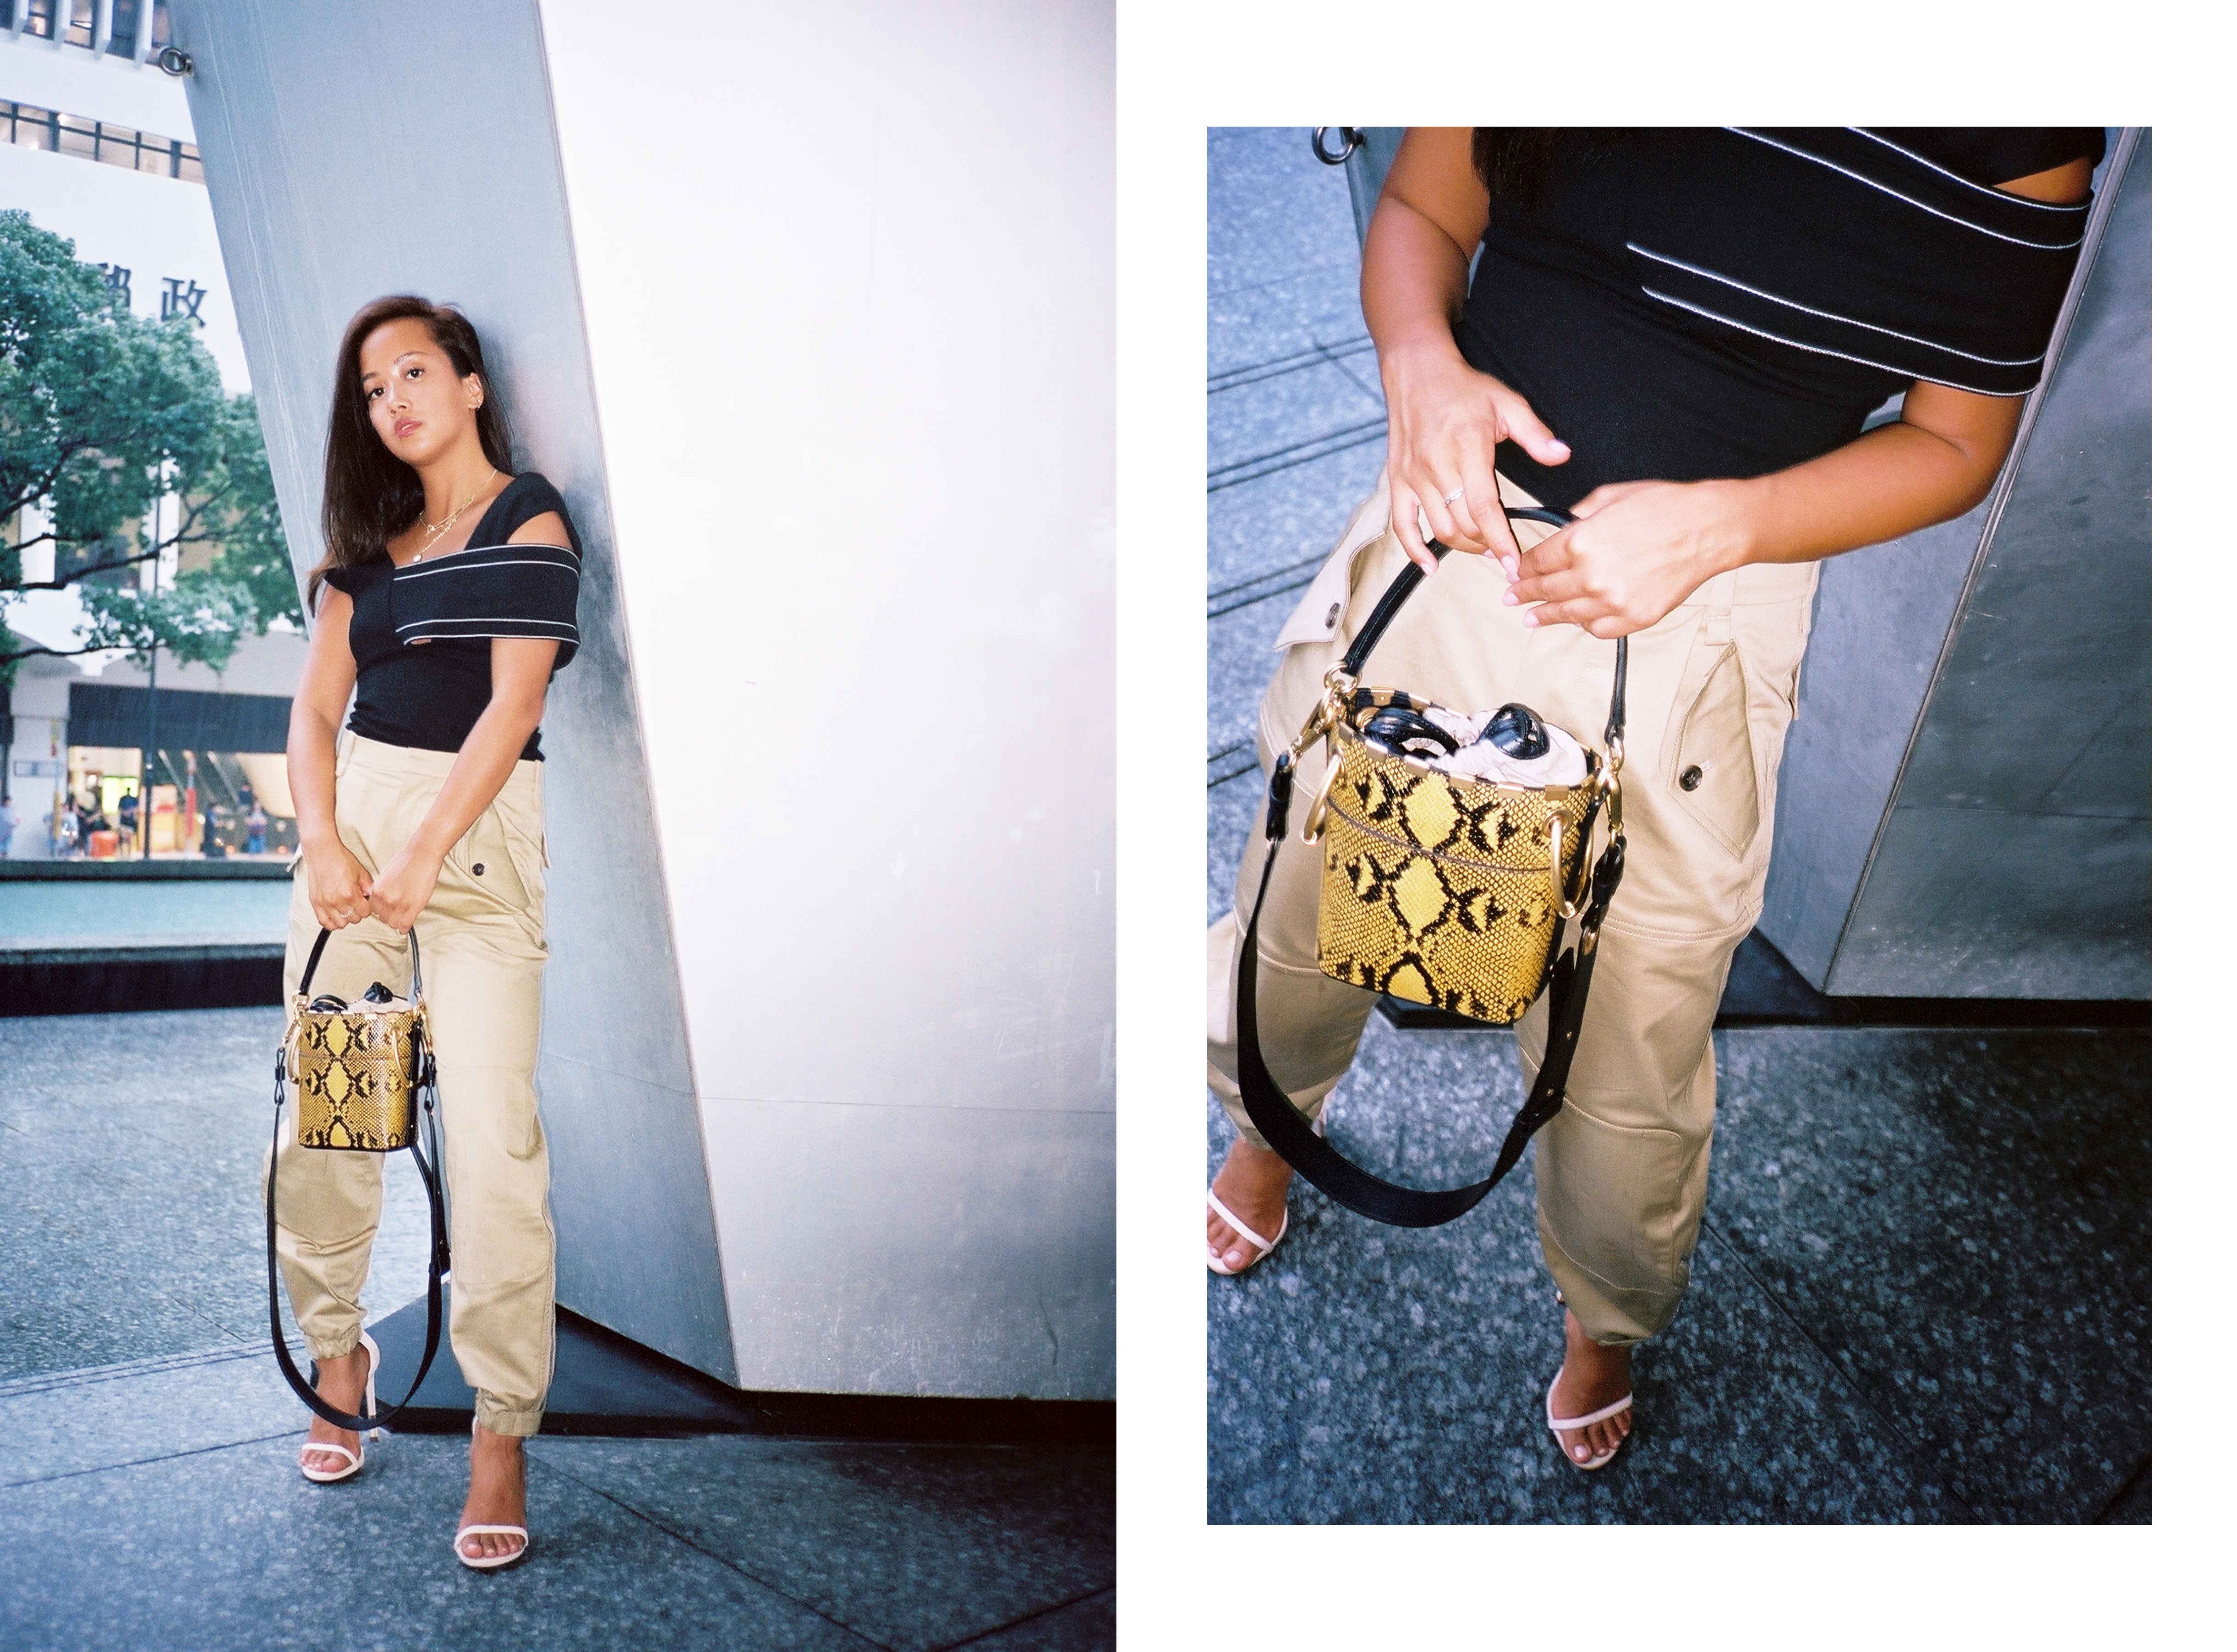 Chloe wears a Rosetta Getty top and Chloé pants via Lane Crawford, shoes by Stuart Weitzman